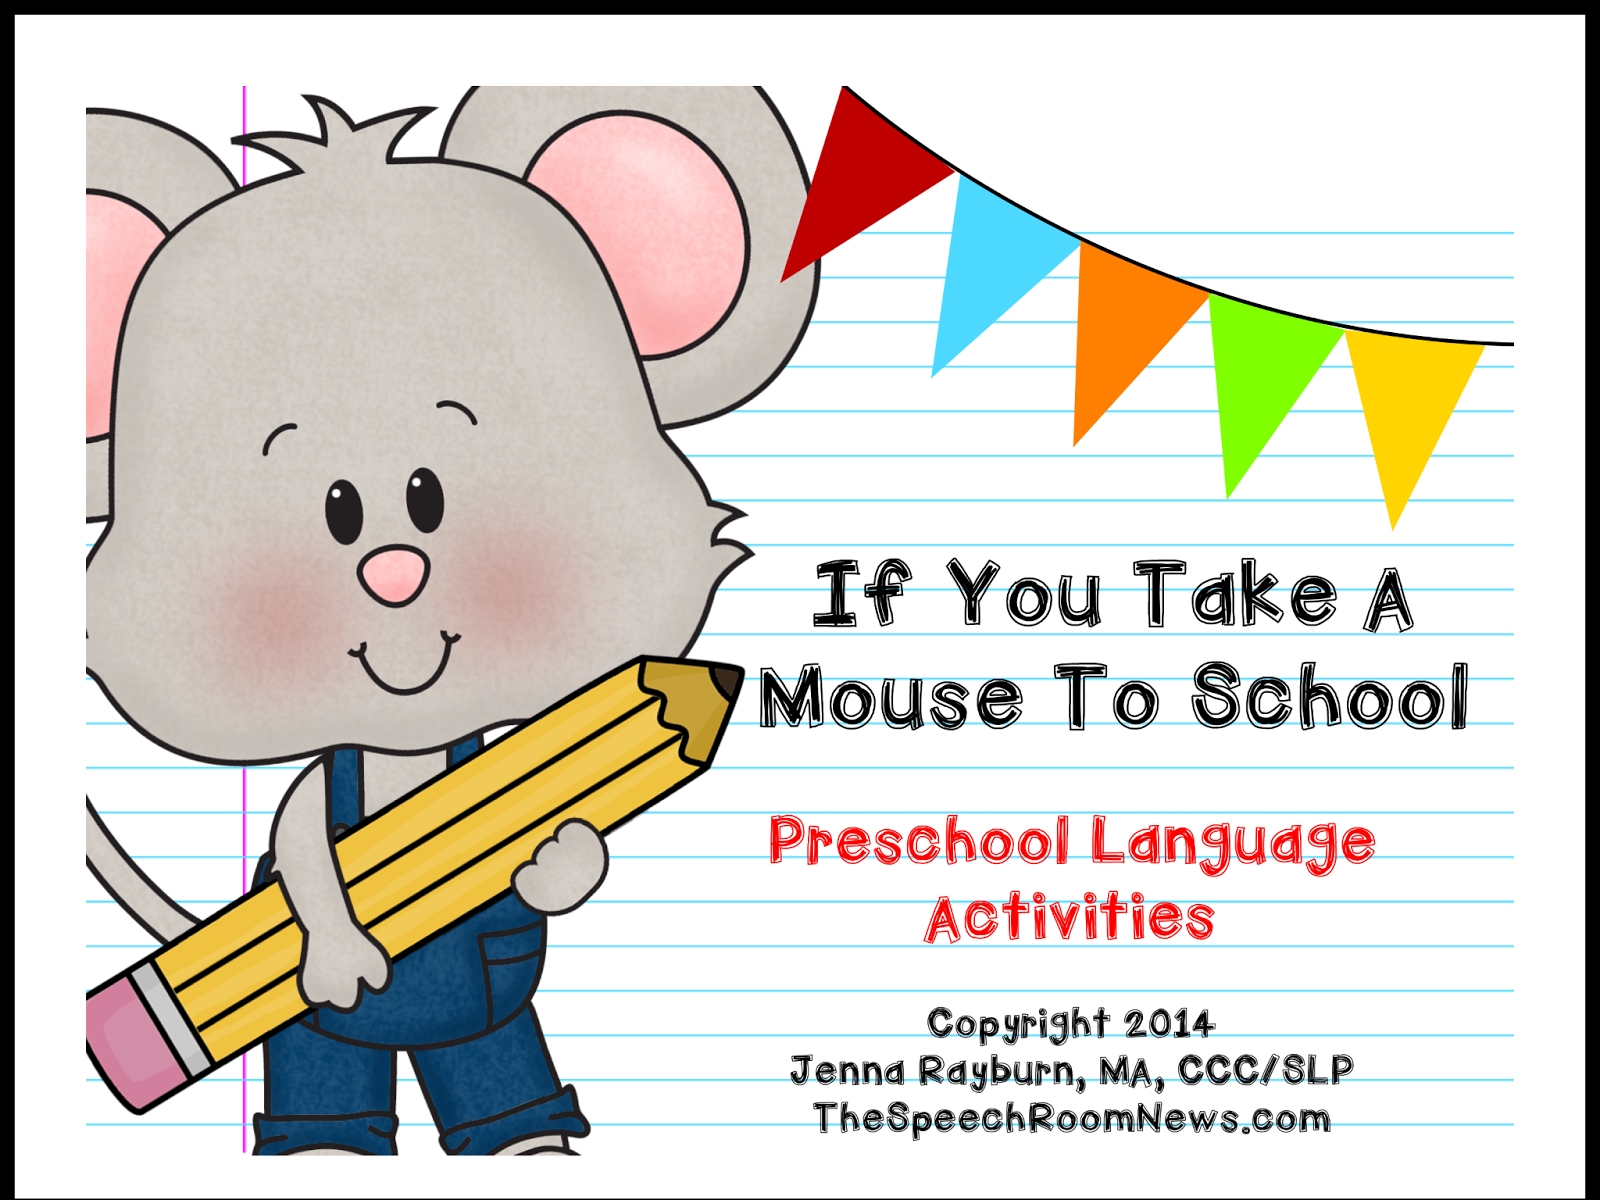 http://www.teacherspayteachers.com/Product/Take-A-Mouse-to-School-Preschool-Book-Companion-1340562